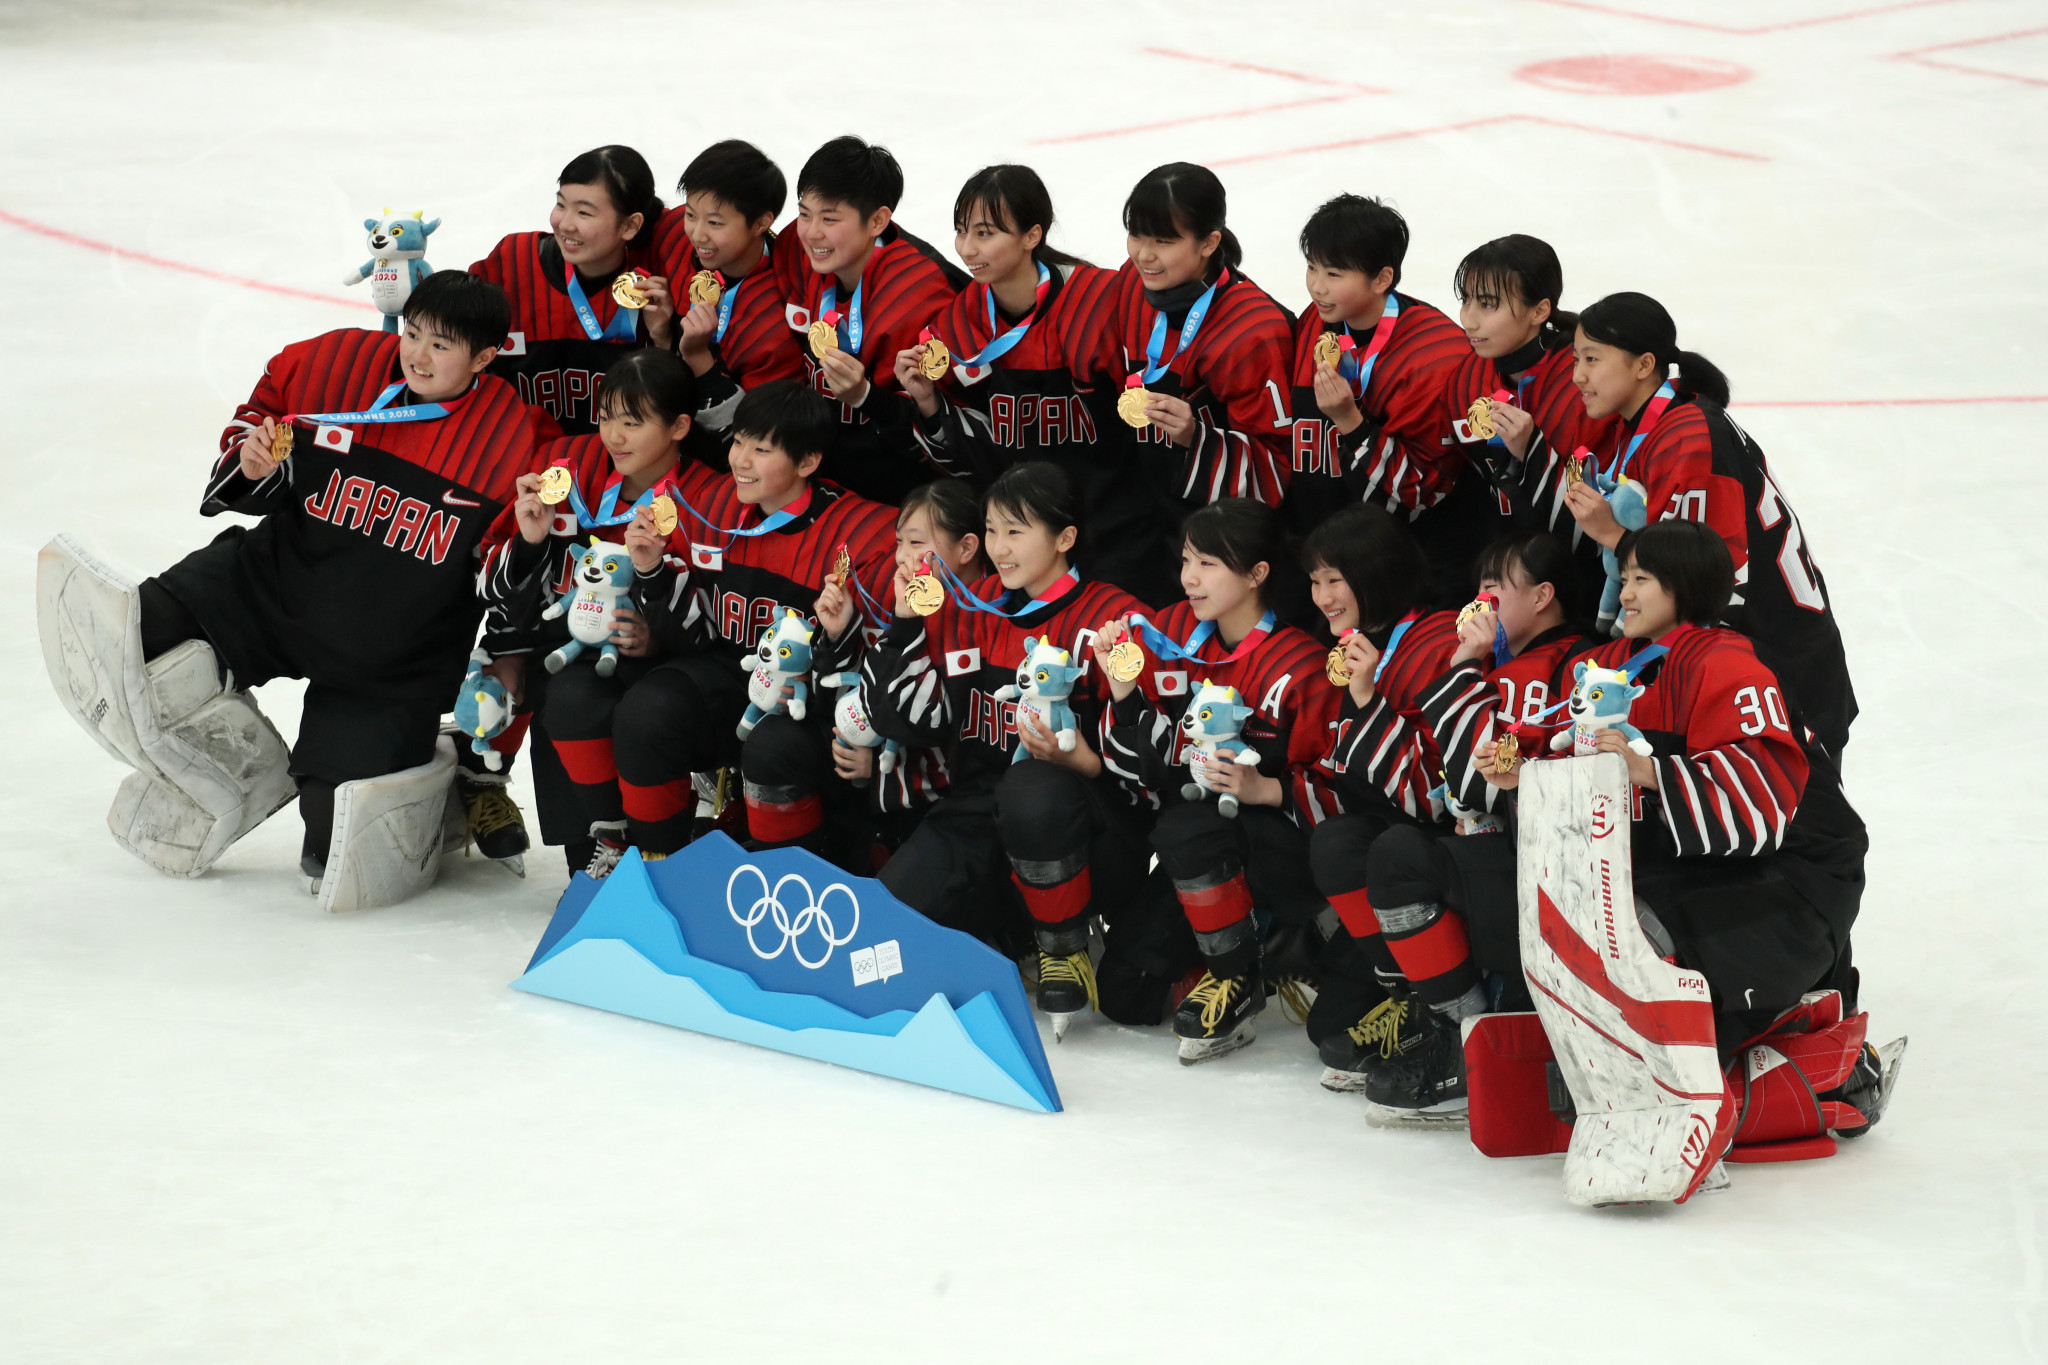 Japan overcome Sweden to clinch women's ice hockey title at Lausanne 2020